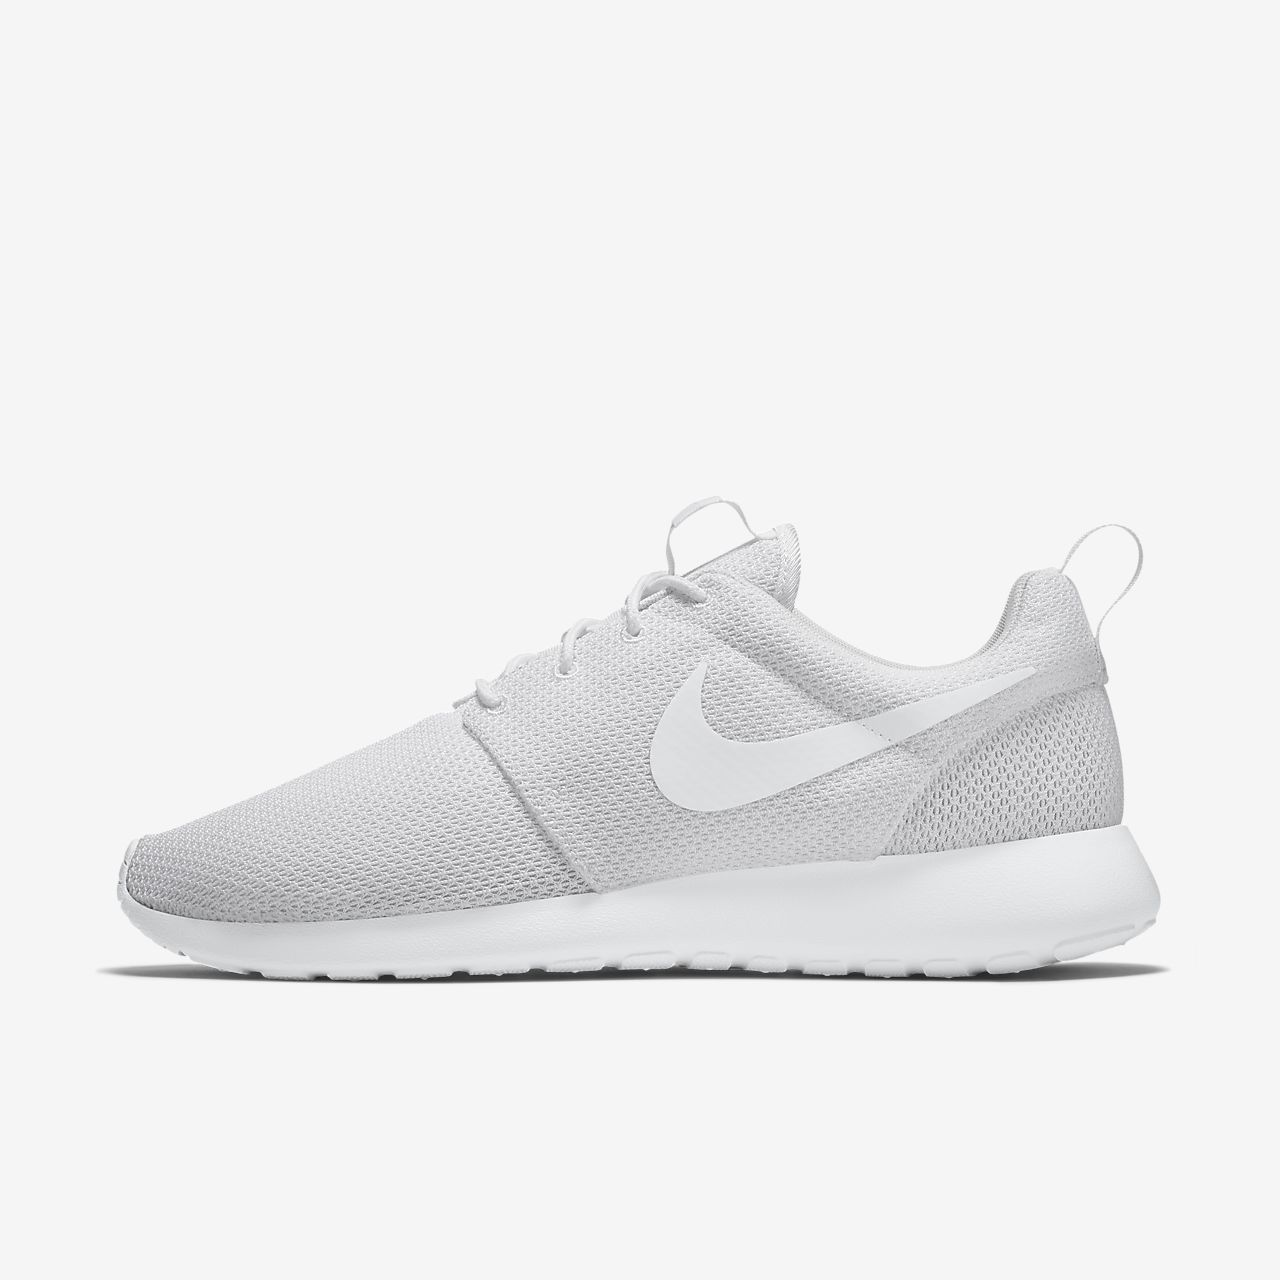 b94ba1c6f1896 Nike Roshe One Men s Shoe. Nike.com